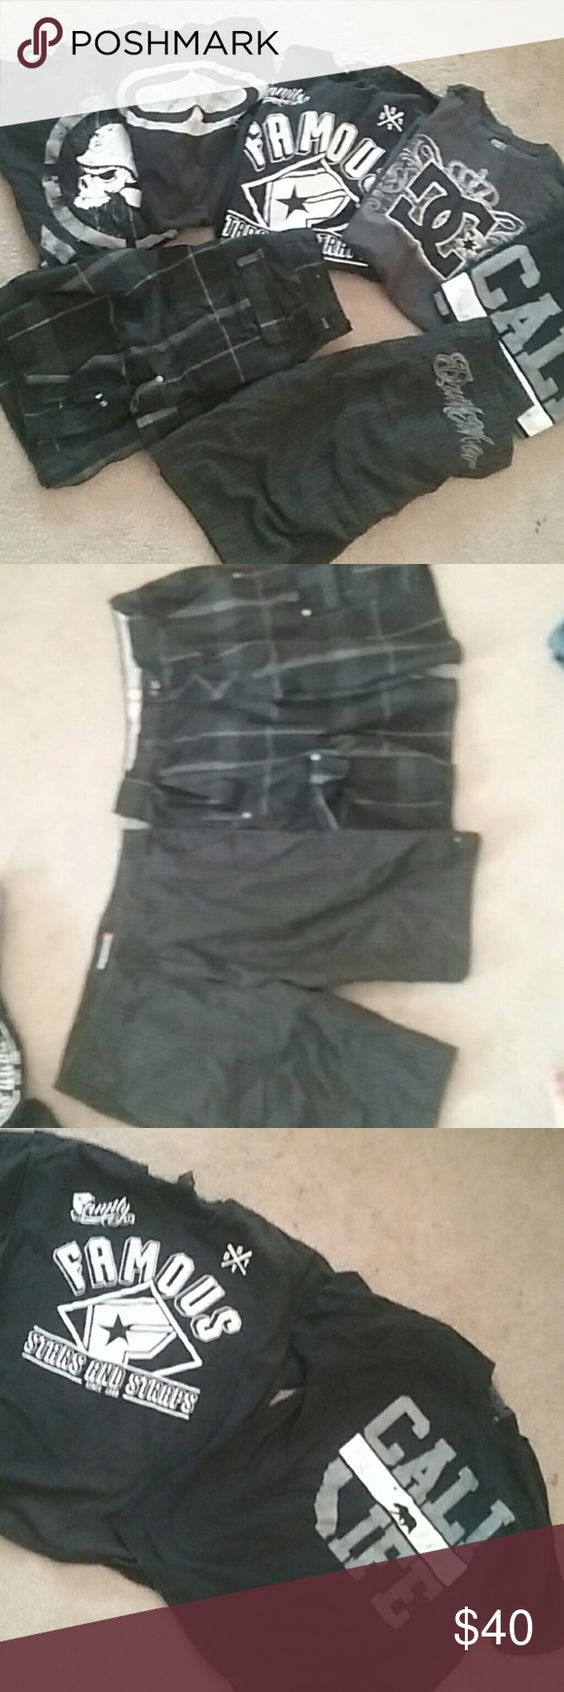 Guys L/xL bundle 34 shorts Shirts are SRH, metal mulisha, dc, famous stars.  shorts are quicksilver and op brand both size 34 all good gently used condition Famous Stars & Straps Shirts Tees - Short Sleeve